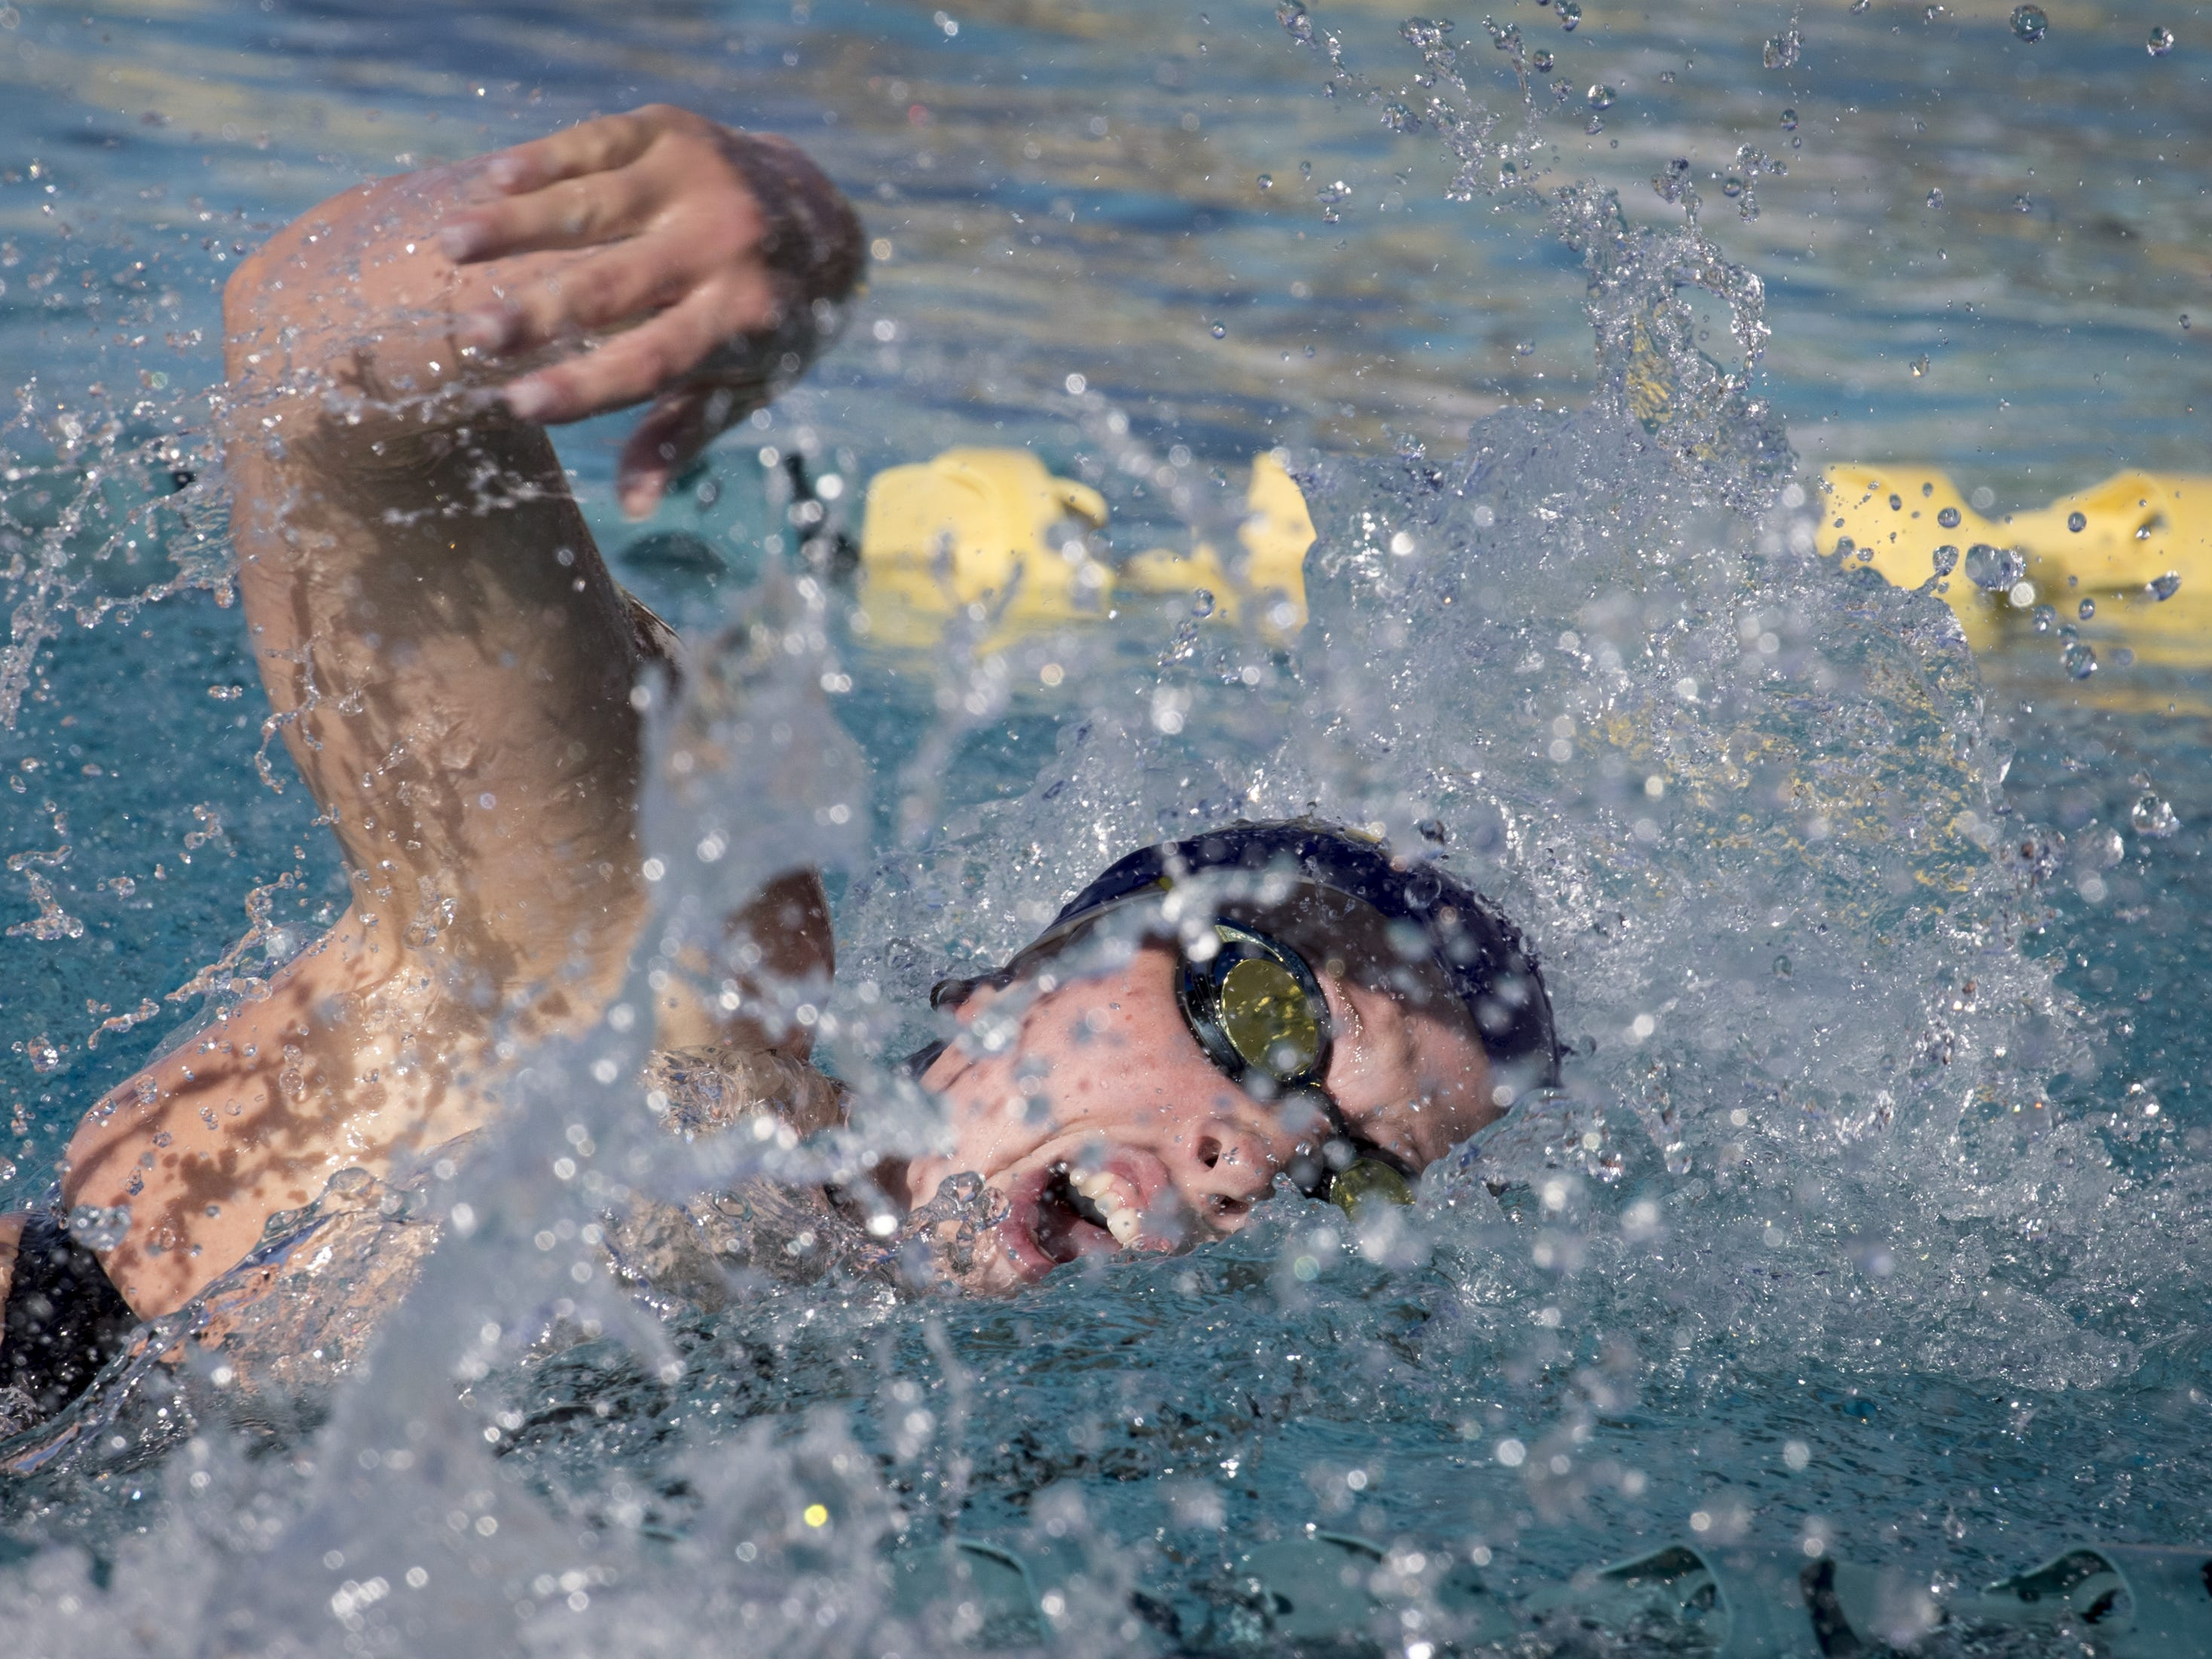 Ellice Richman (Sunrise Mountain) swims the 200 Freestyle, November 3, 2018, during the AIA Division II state swimming finals at the Skyline Aquatic Center, Mesa. Richman won the event.